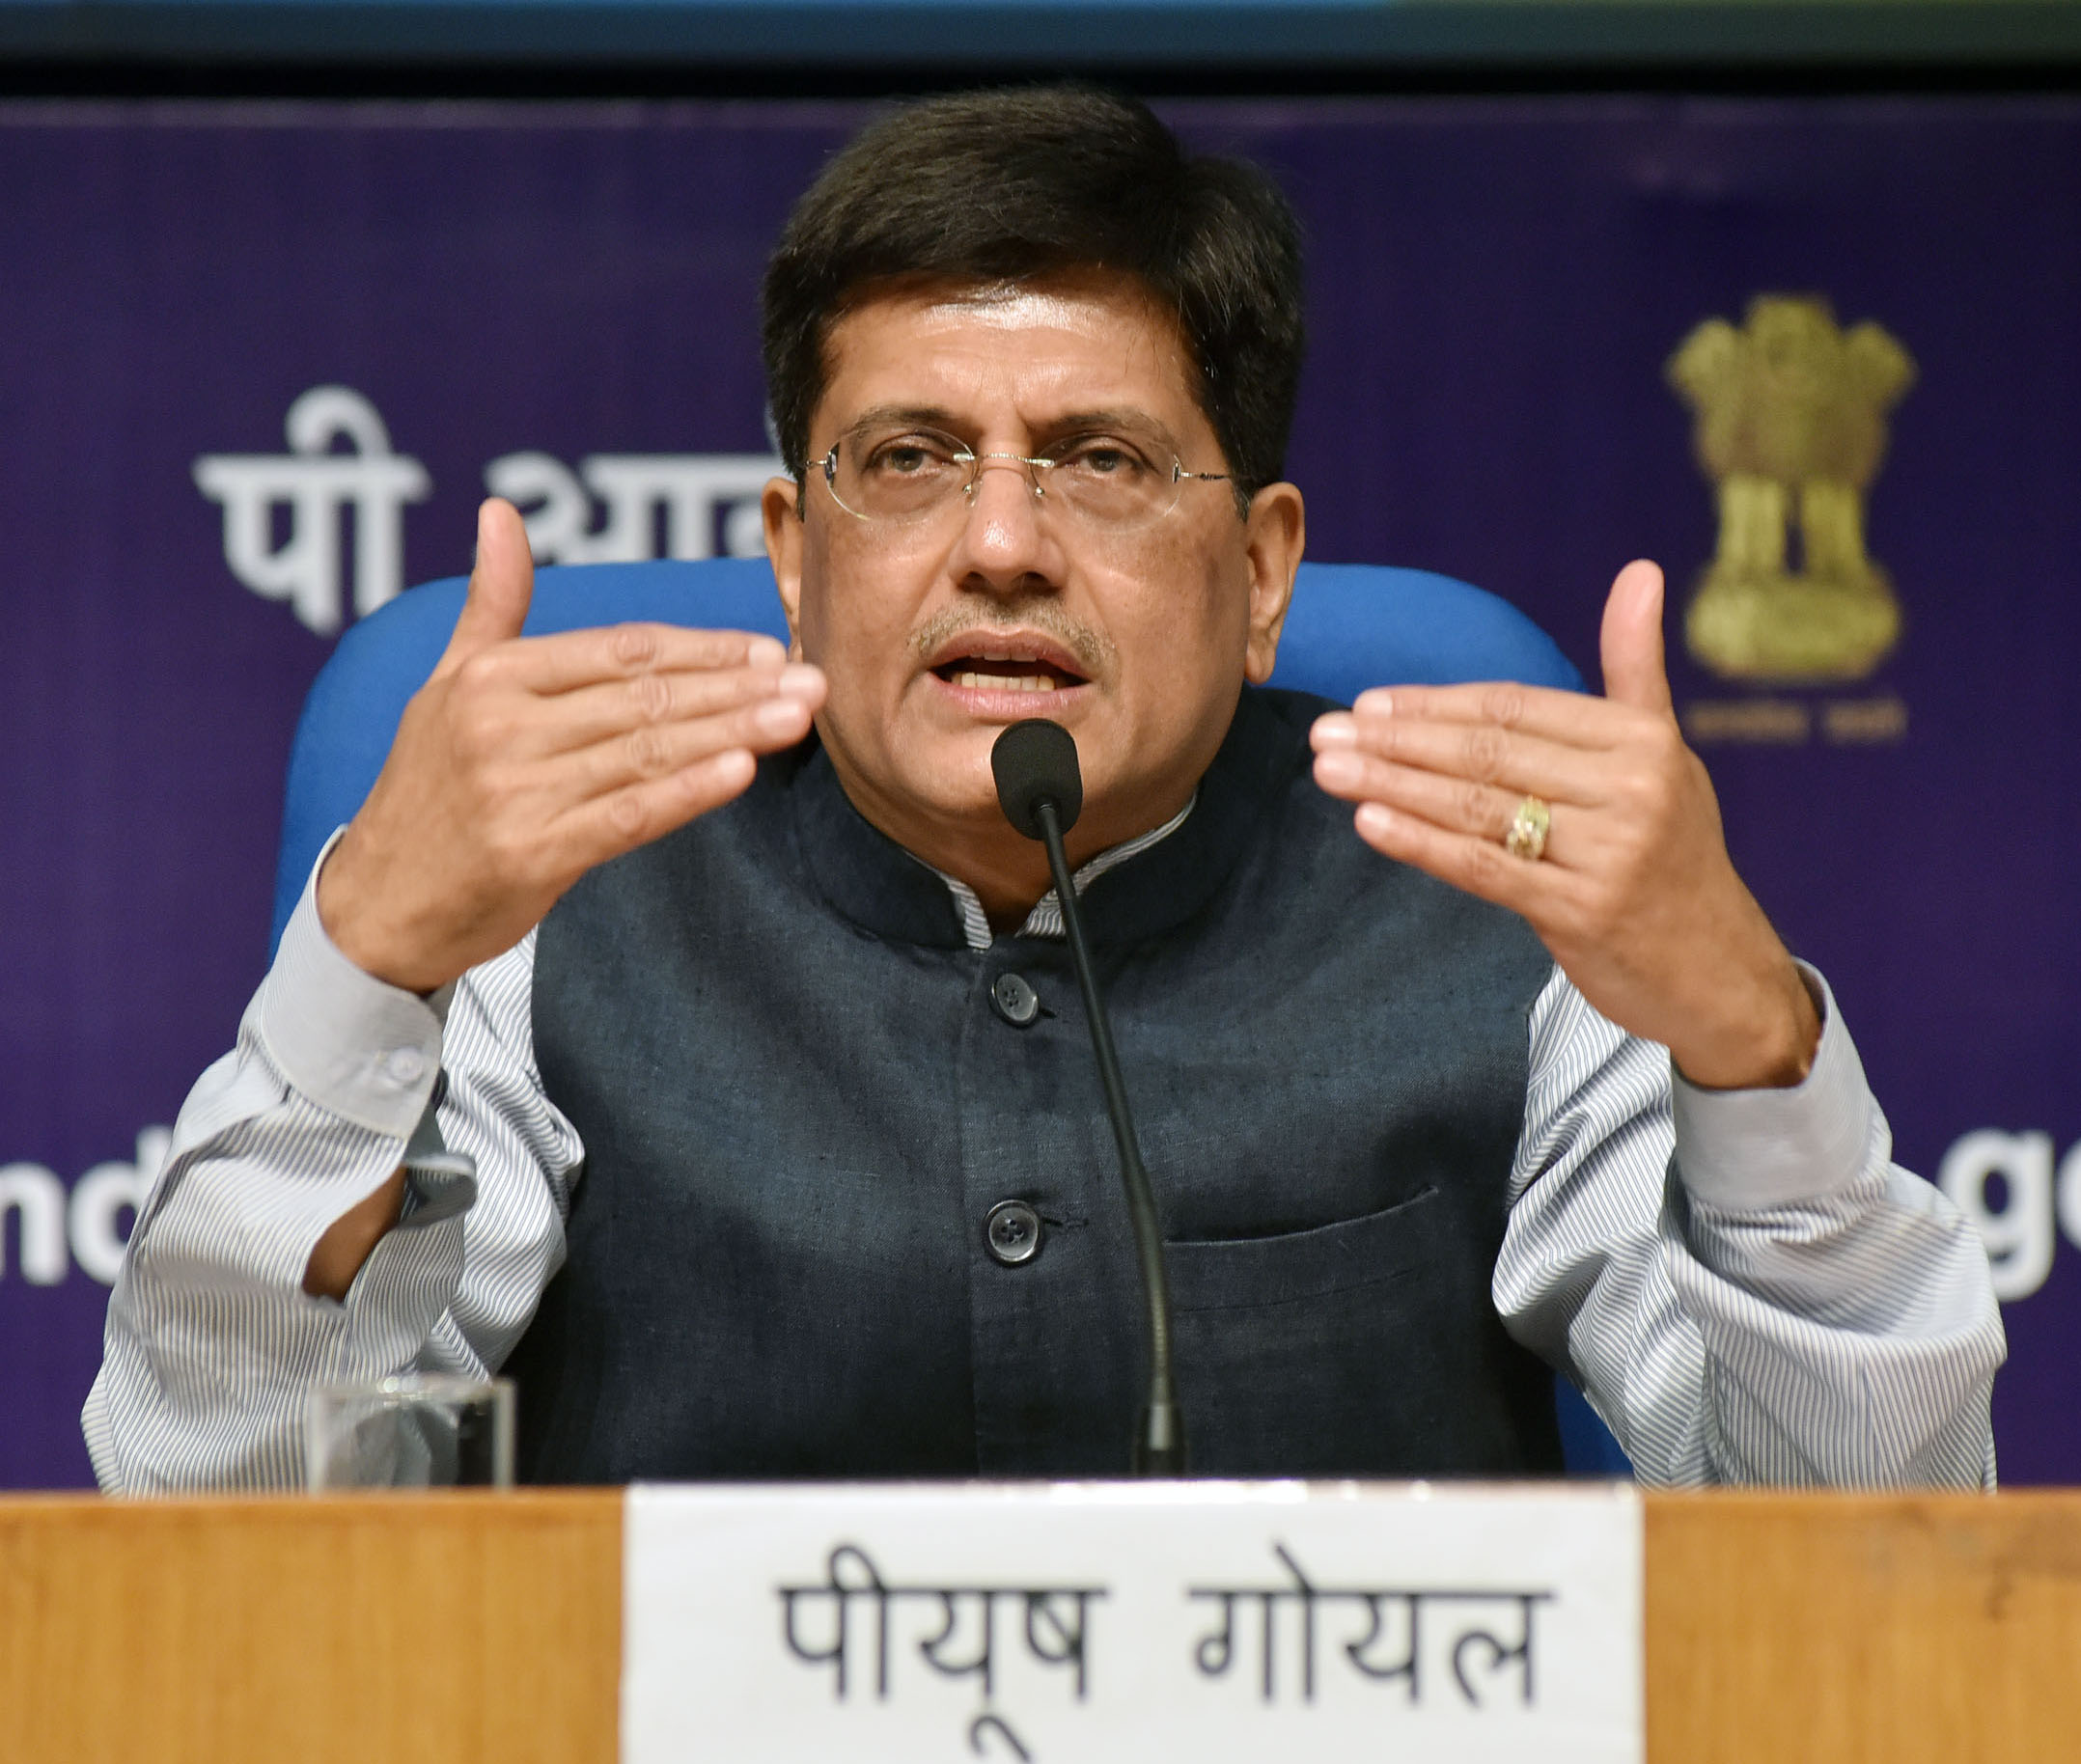 Piyush Goyal addressing a Press Conference on the achievements of his Ministries during 3 years of NDA Government%2C in New Delhi